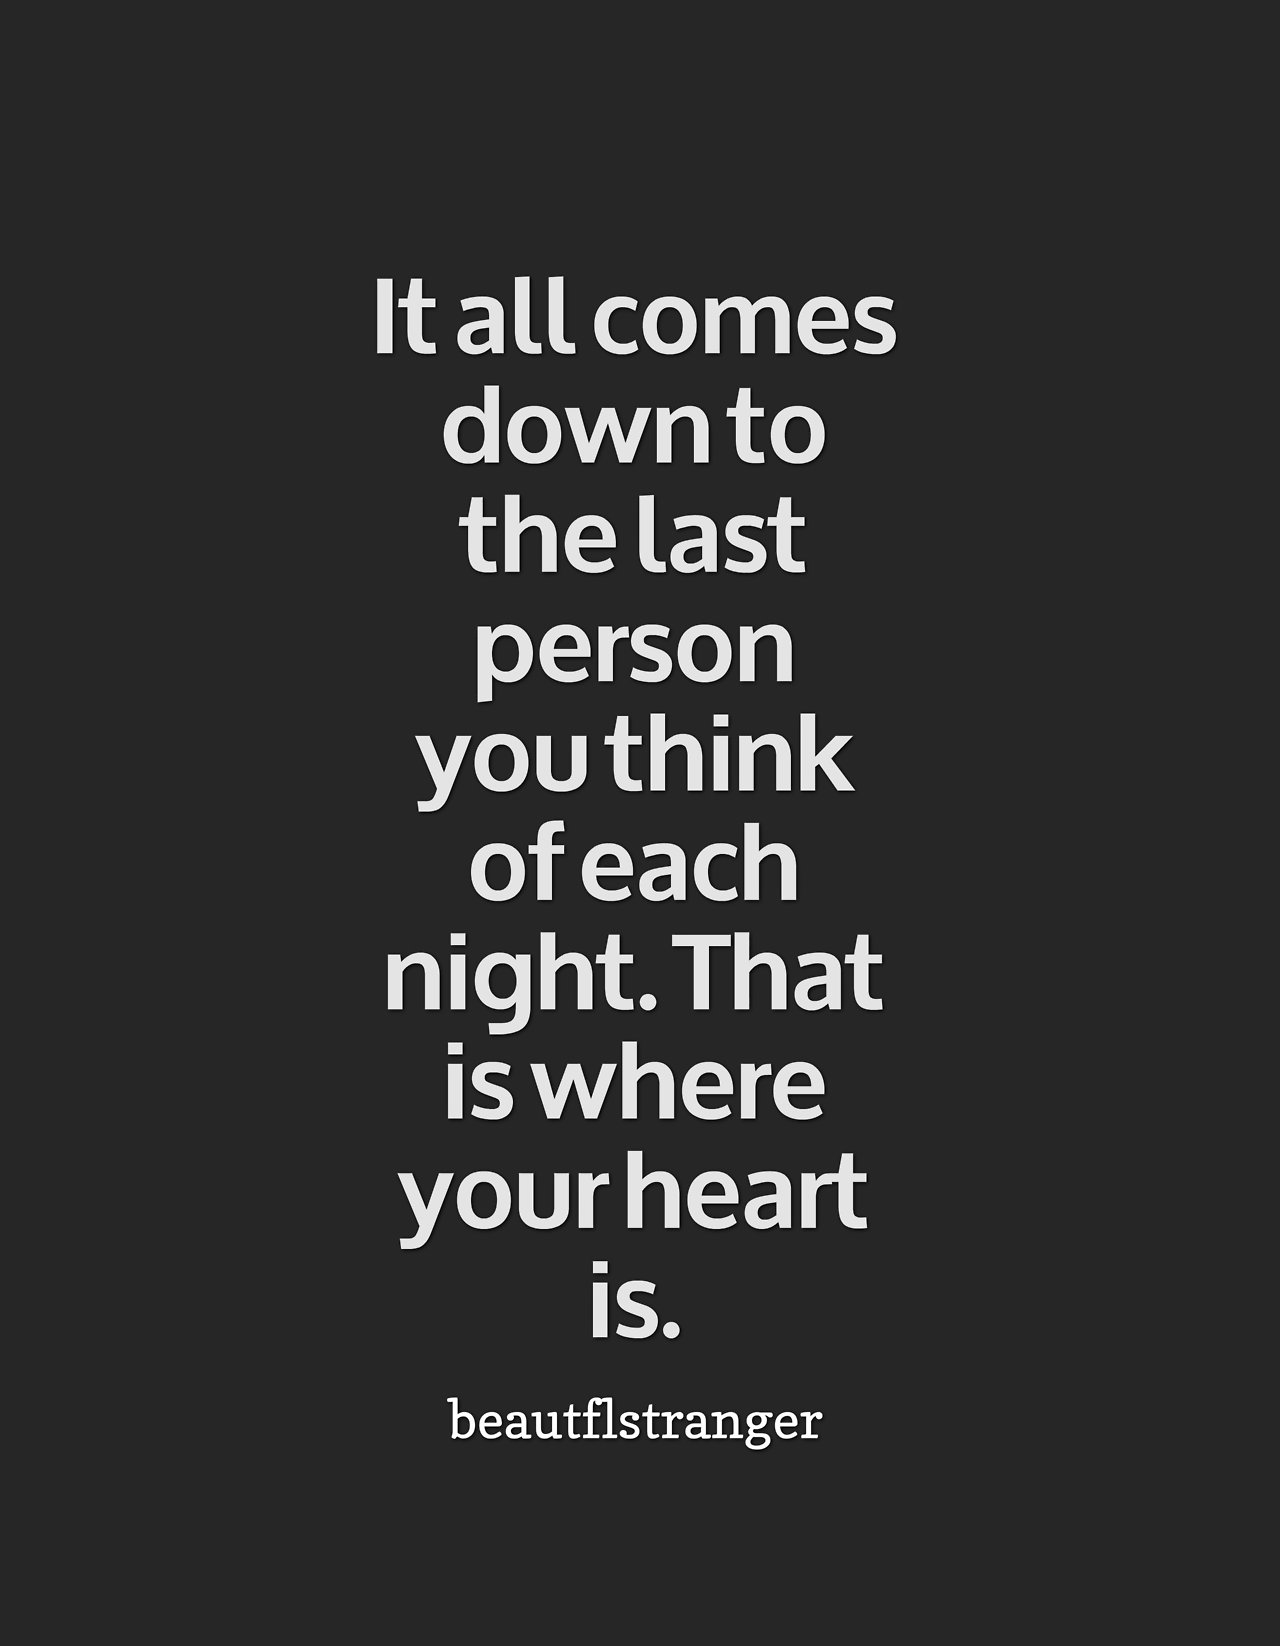 Pin By Jennifer Caudill On Facing Hurts Inspirational Quotes Meaningful Quotes Funny Quotes